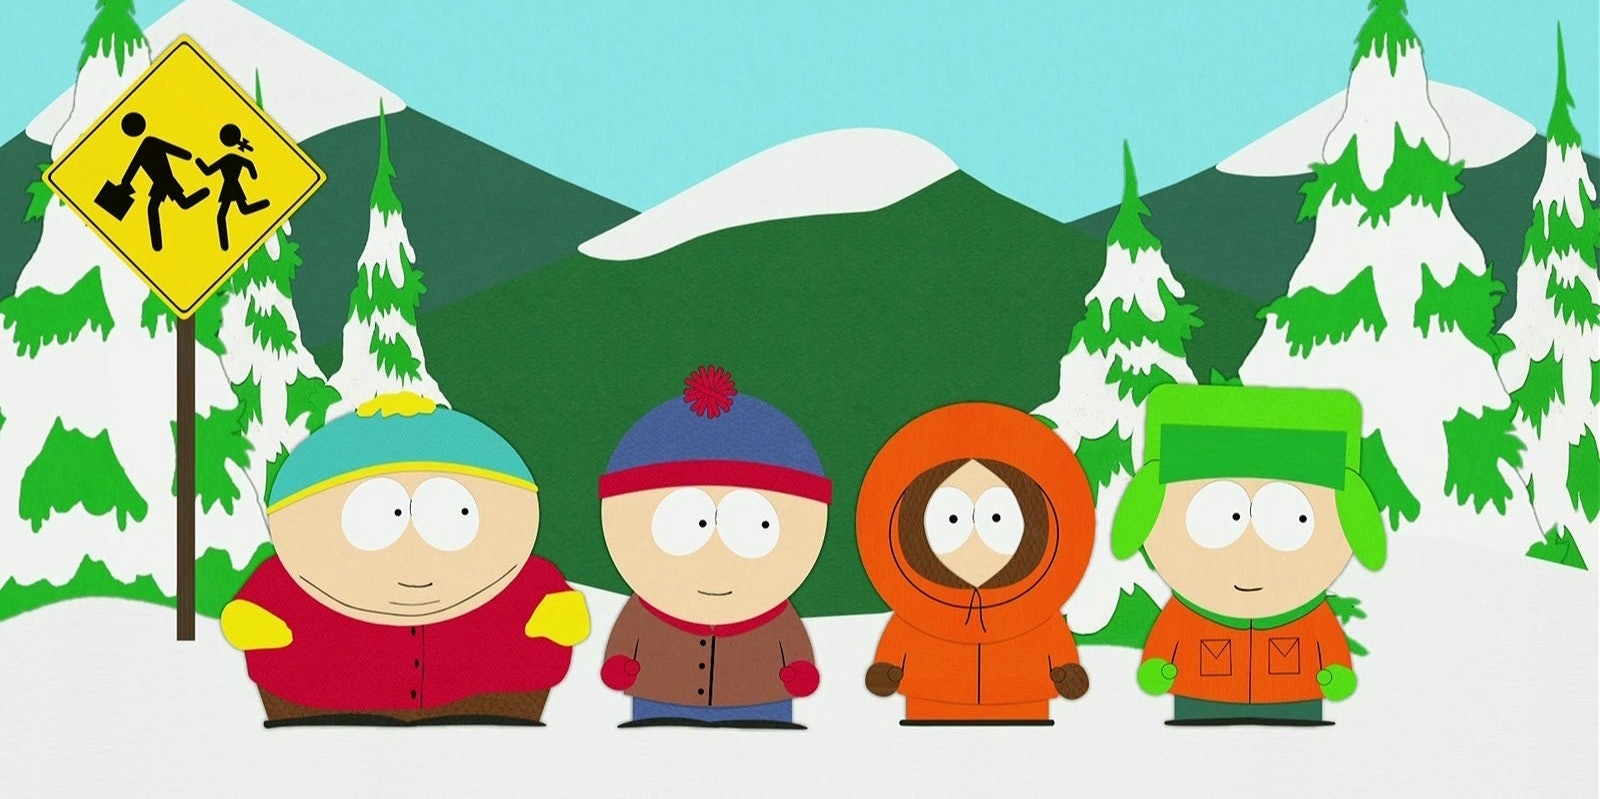 8 Reasons South Park Is Still Going Strong in Season 20